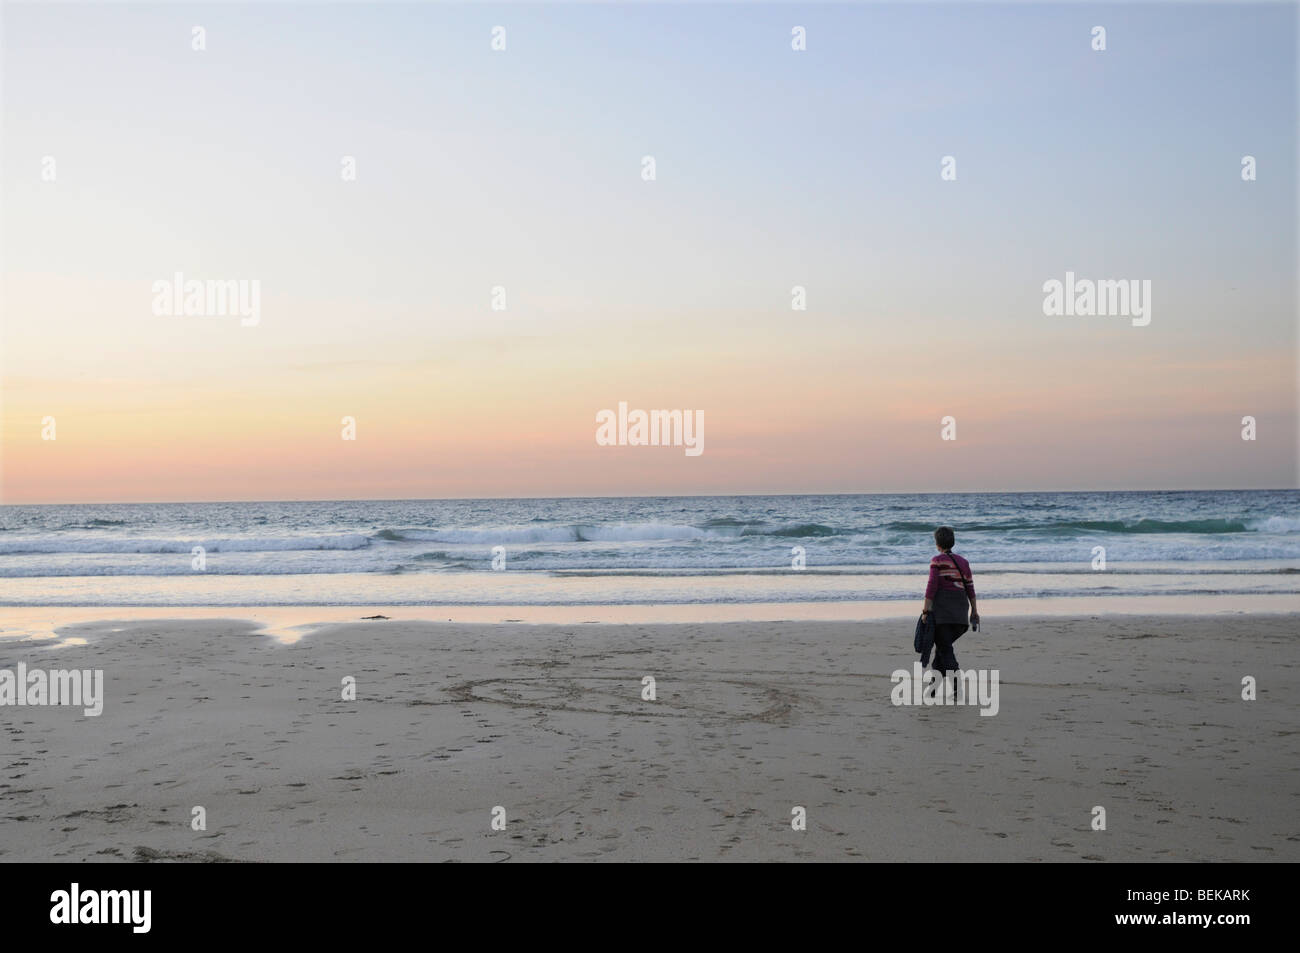 A 40 year old woman walks on a Cornish beach at sunset - Stock Image